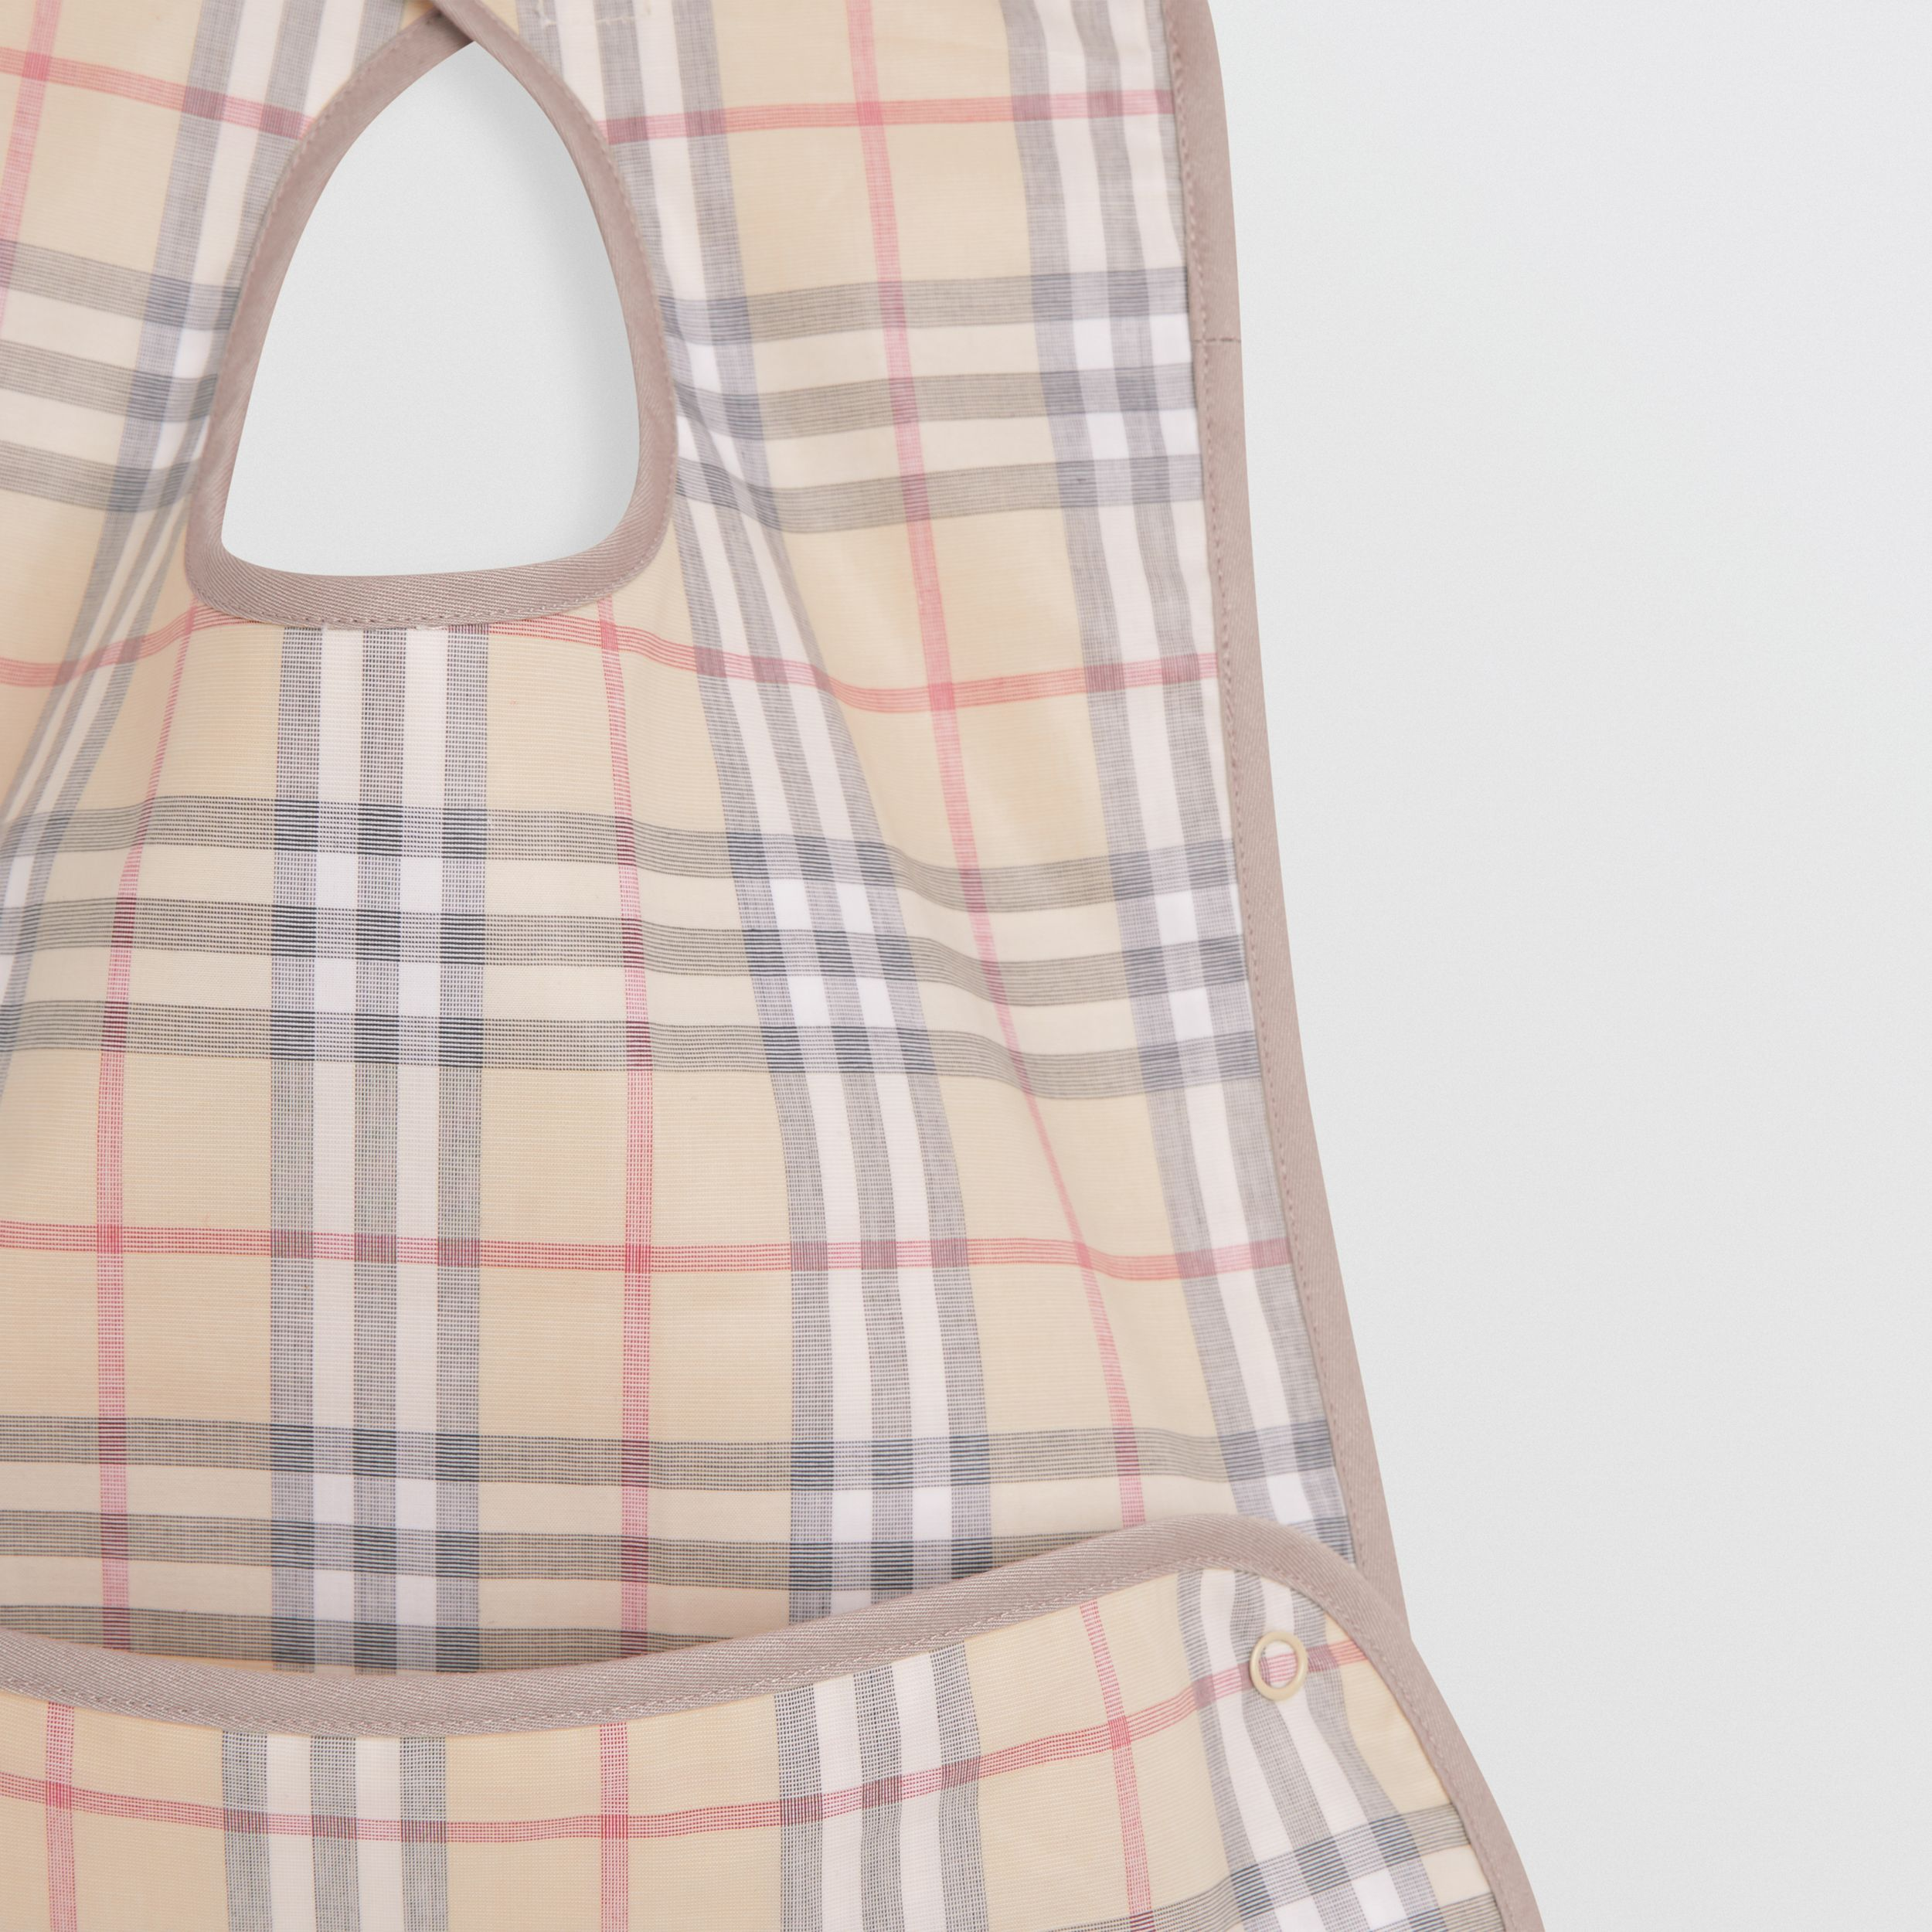 Coated Check Cotton Baby Bib in Pale Stone - Children | Burberry - 4